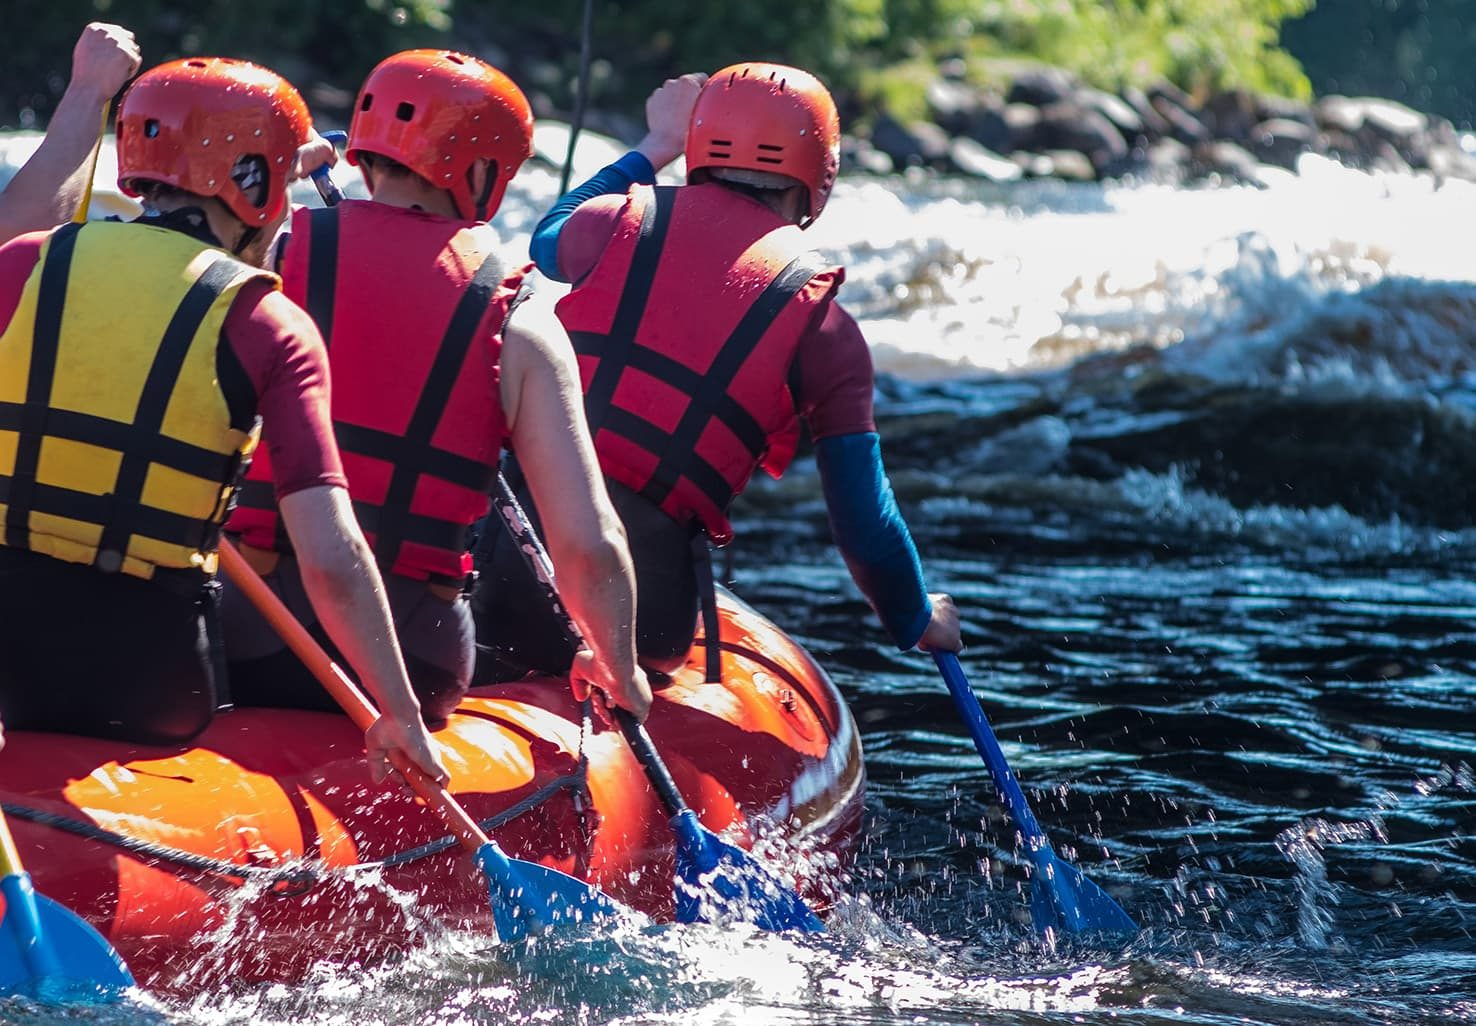 people rafting on a river in the summer